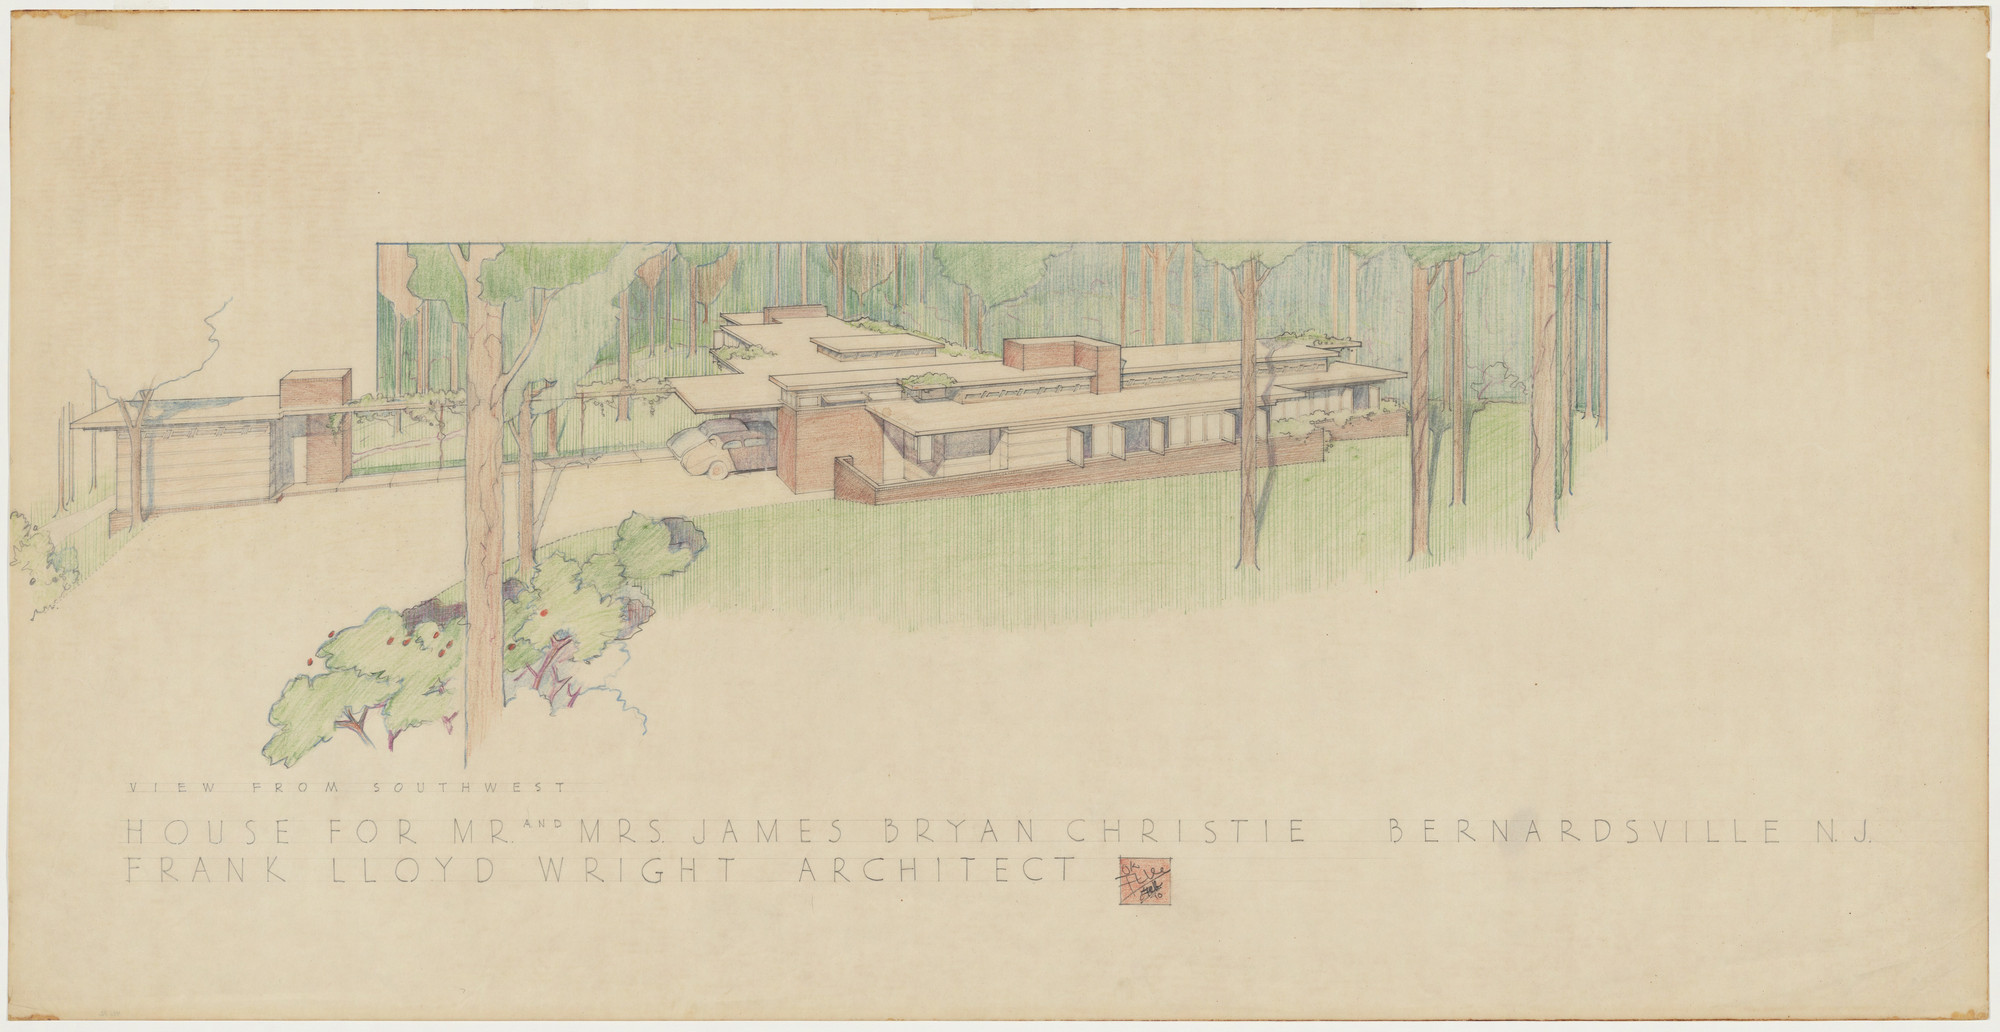 Frank Lloyd Wright. Mr. and Mrs. James Bryan Christie House, Bernardsville, New Jersey, Exterior perspective from southwest. 1940